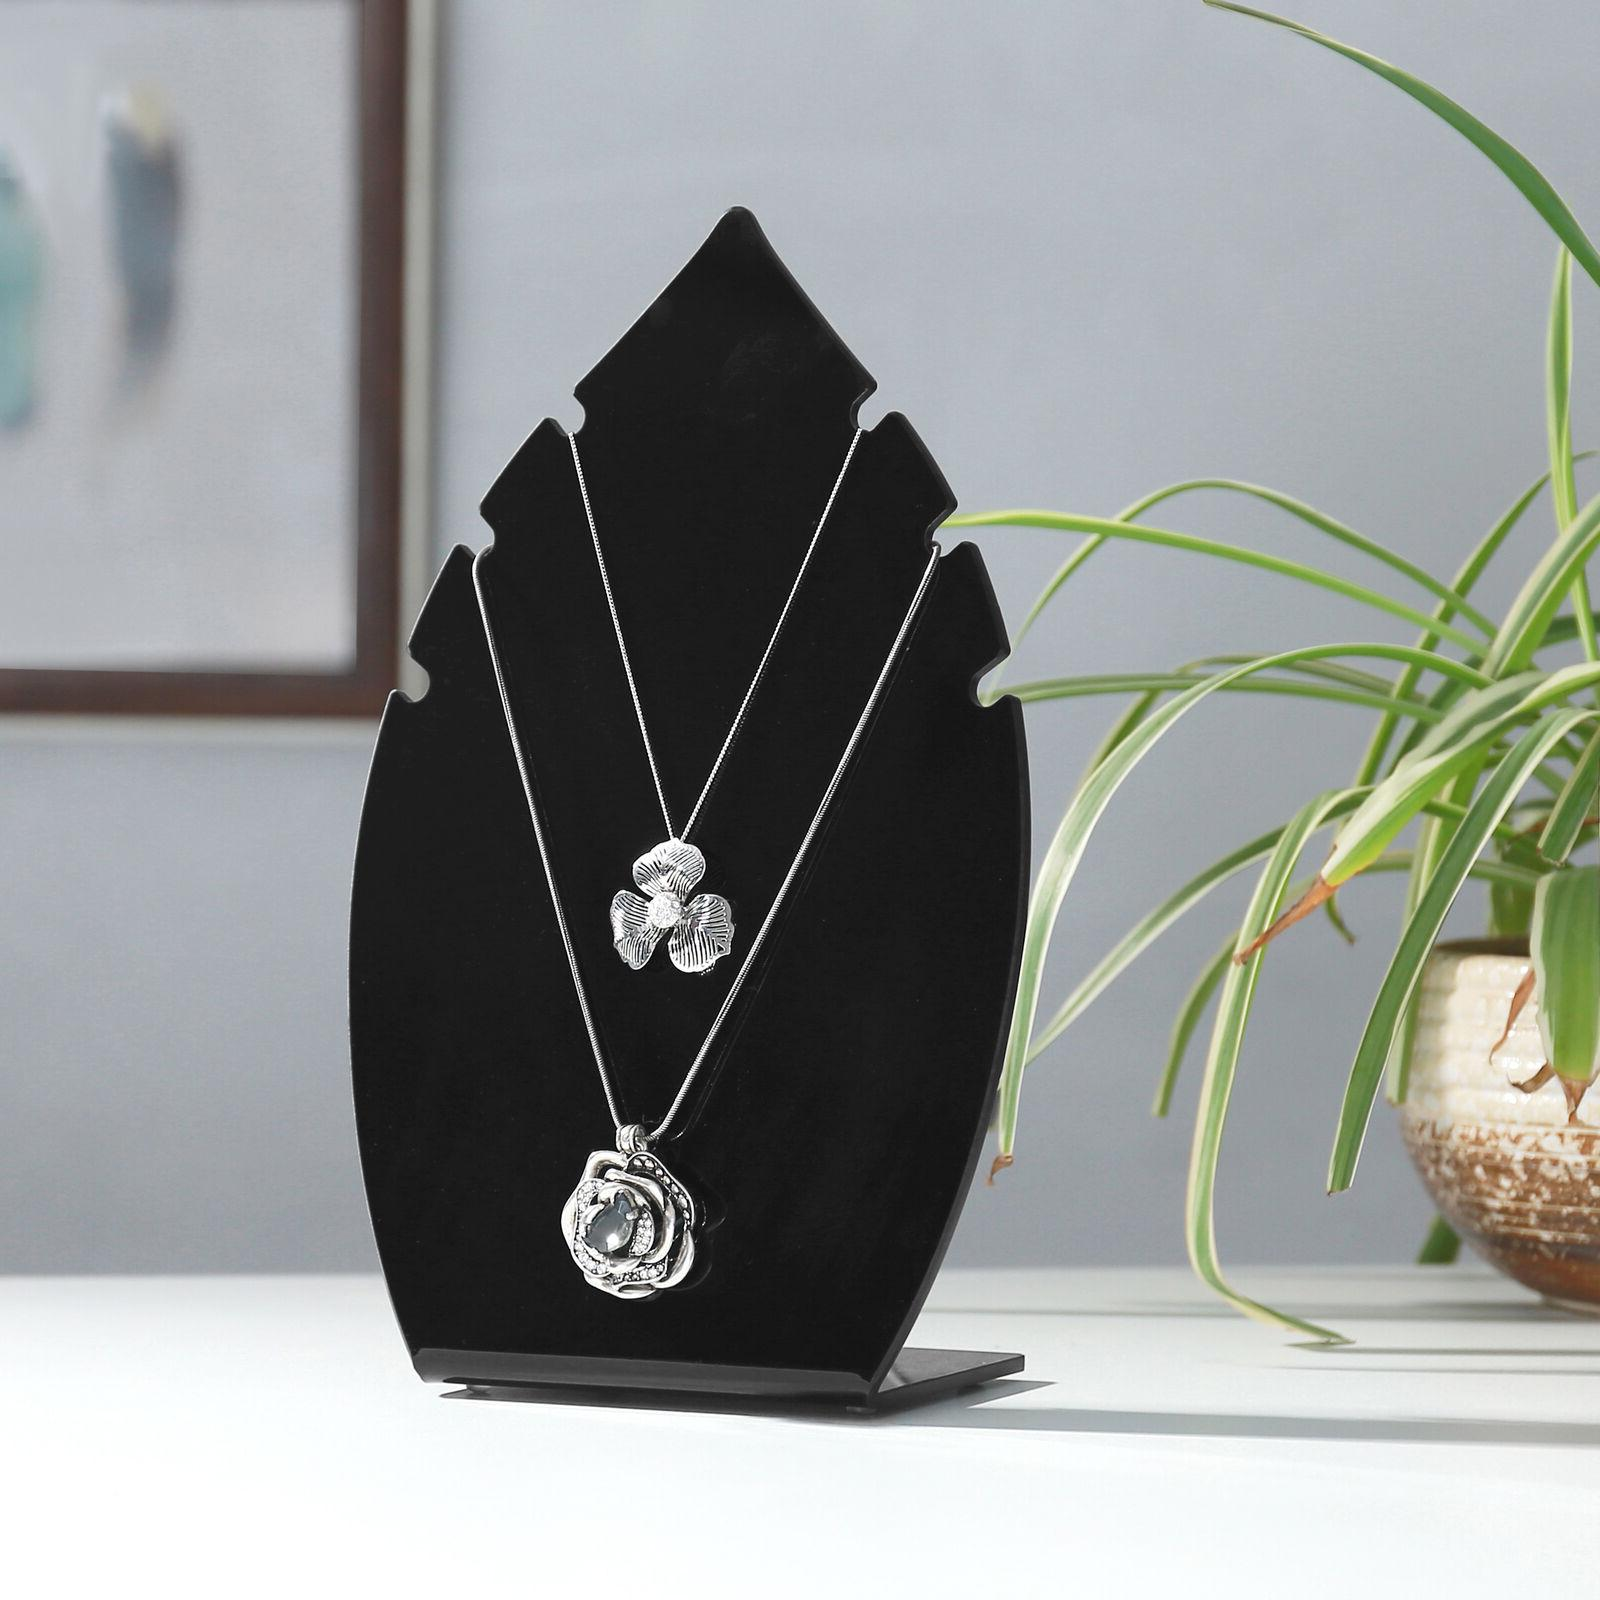 MyGift 10-Inch Leaf-Shaped Acrylic Jewelry Display Stand